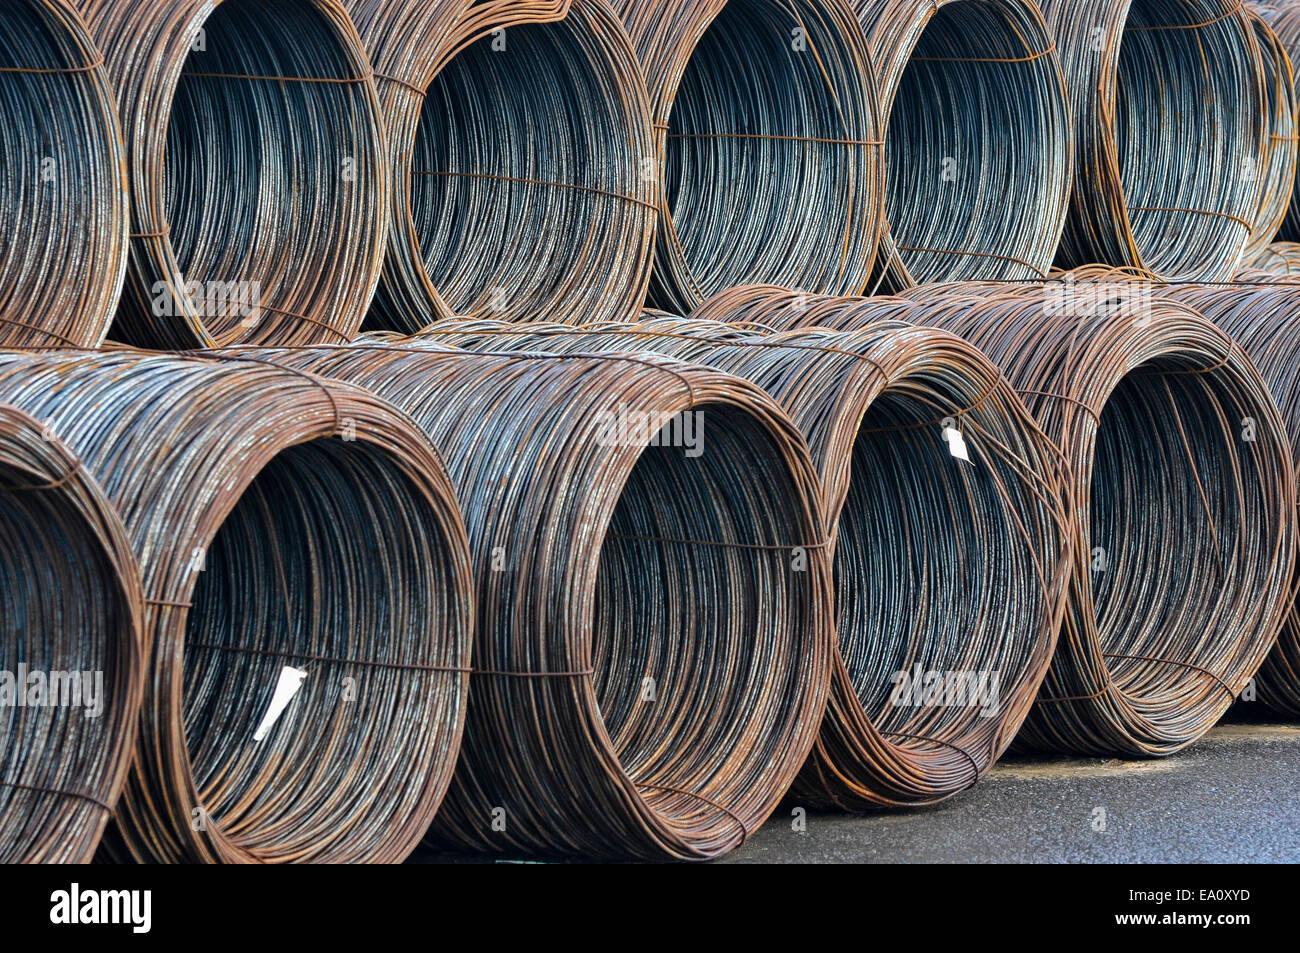 Steel wire coils in storage Stock Photo: 75009185 - Alamy